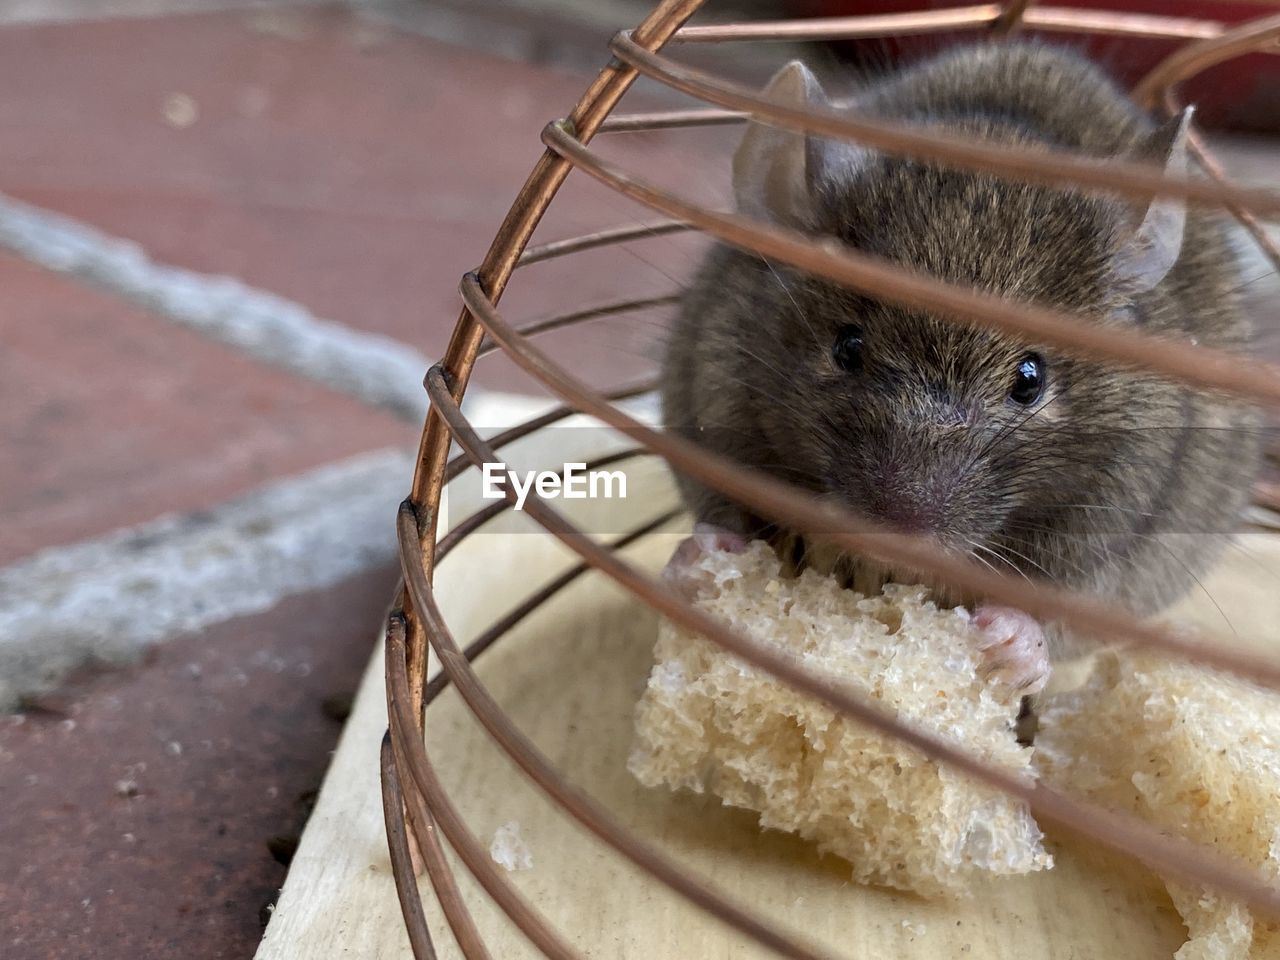 one animal, rodent, mammal, animal themes, animal, close-up, focus on foreground, no people, looking at camera, pets, animal wildlife, day, portrait, domestic, vertebrate, high angle view, outdoors, domestic animals, whisker, eating